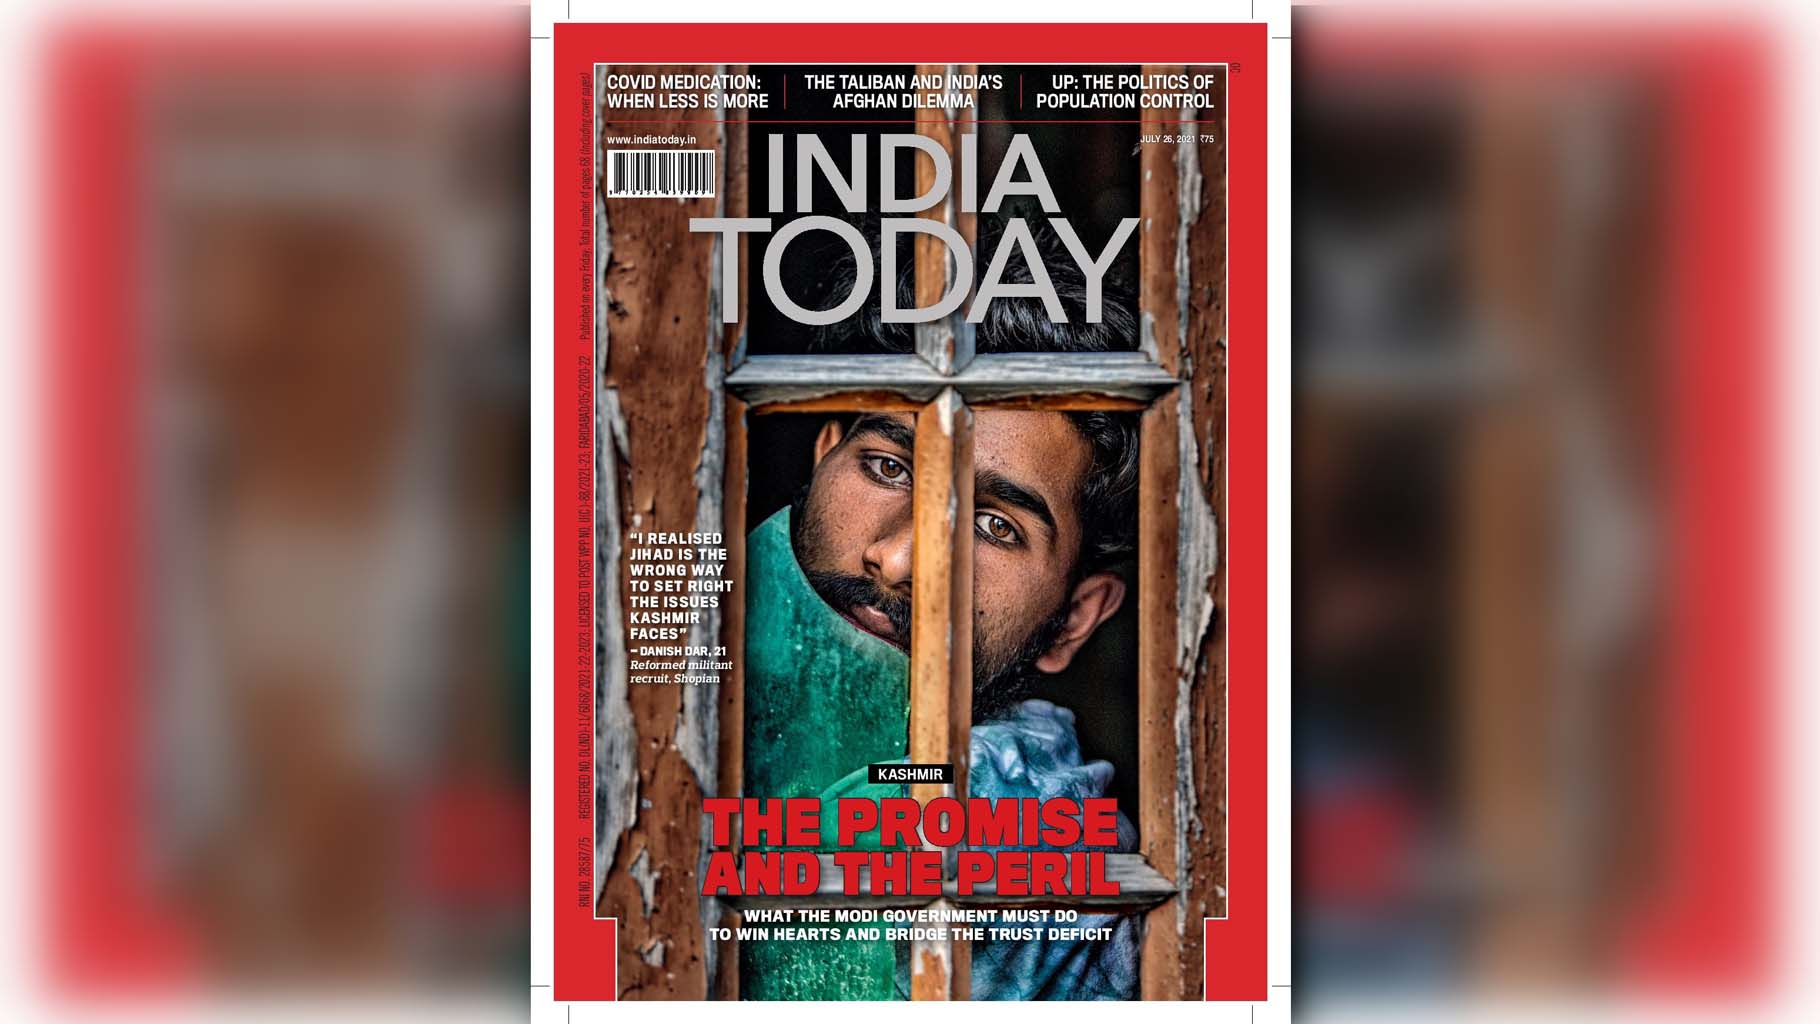 India today magazine, Article 35A, Article 370, Militancy in kashmir